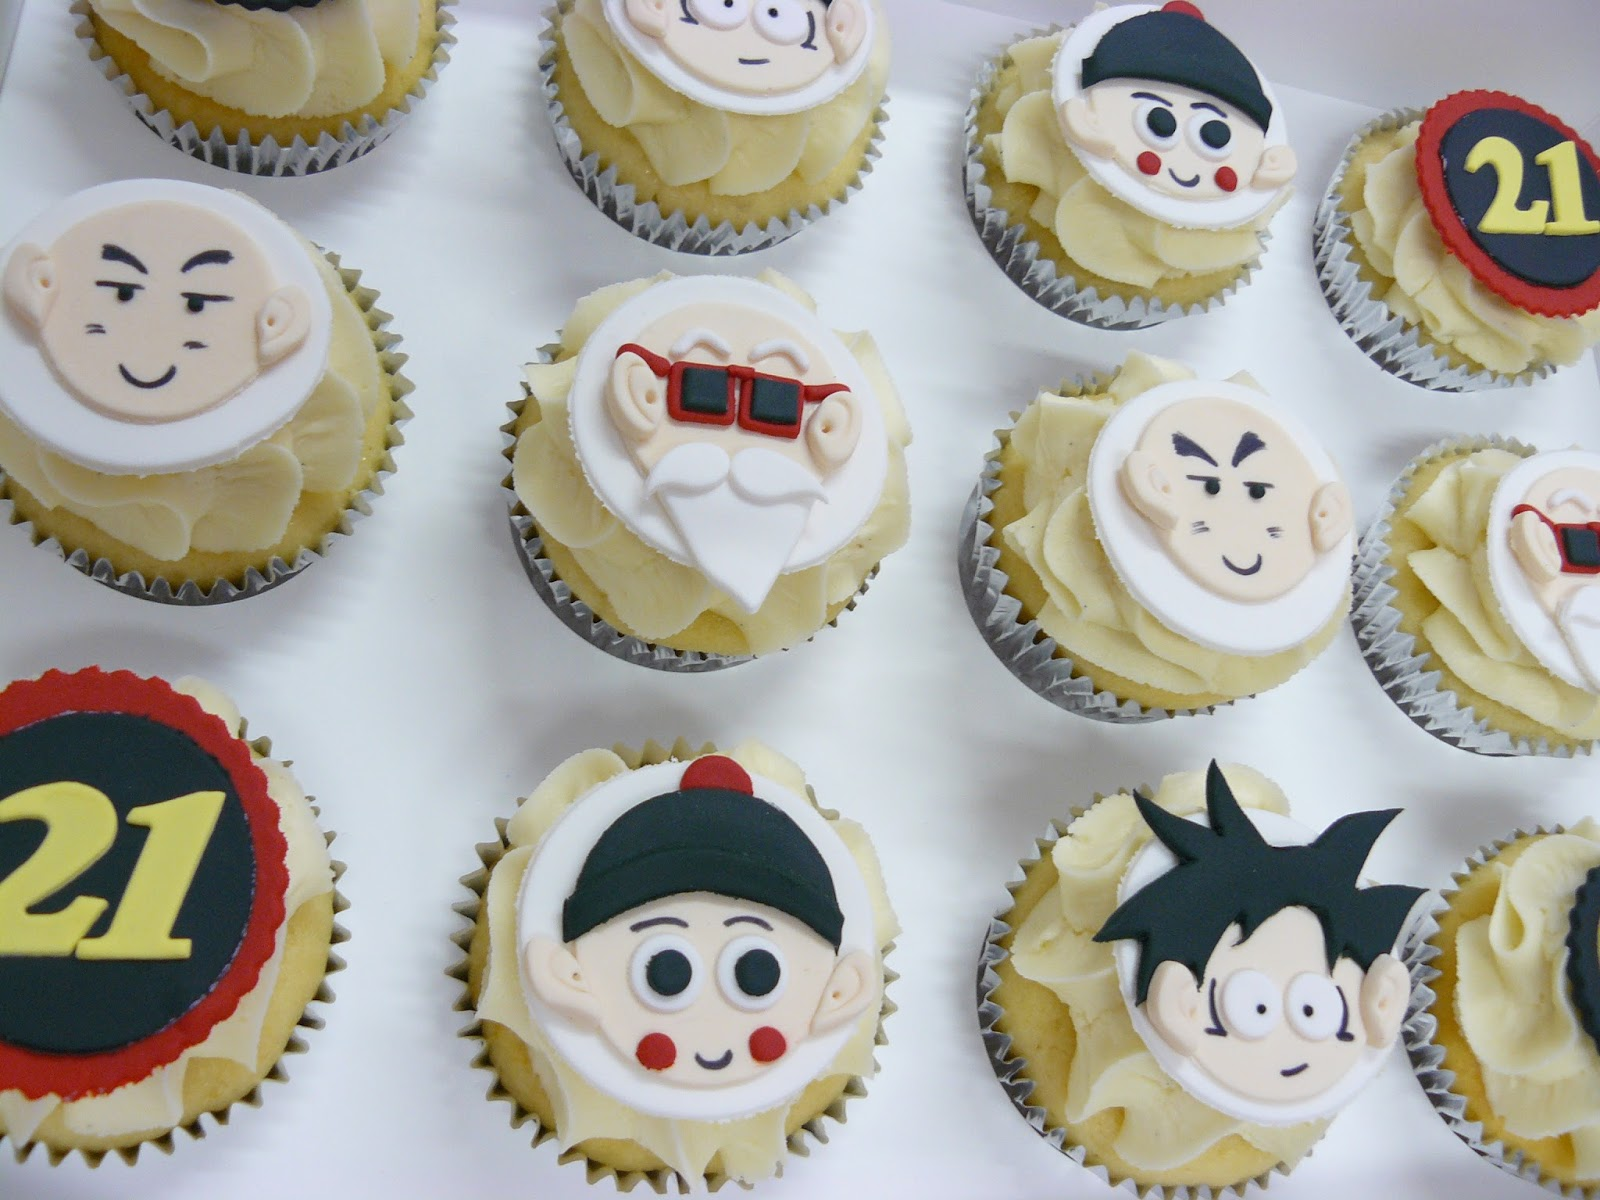 Dragon Ball Z Cake Decorations The Cup Taste Brisbane Cupcakes 37